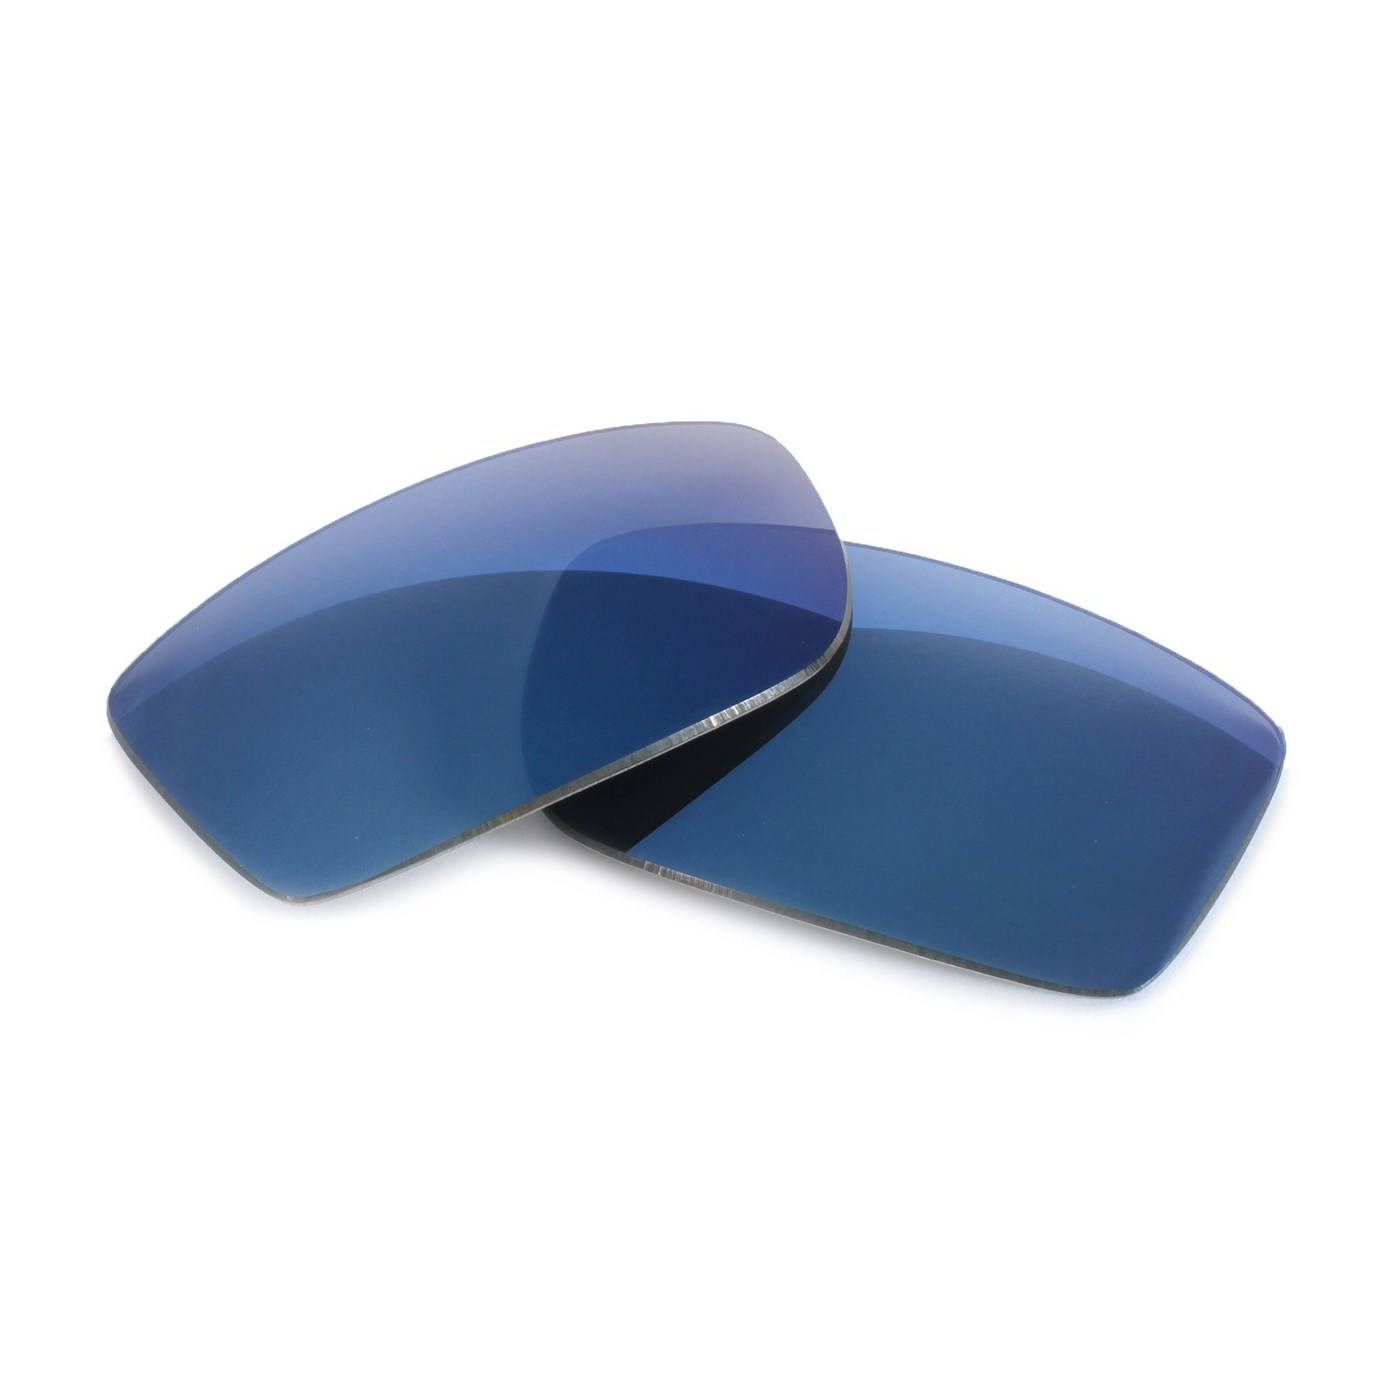 Fuse-Lenses-Polarized-Replacement-Lenses-for-Ray-Ban-RB3379-64mm thumbnail 15